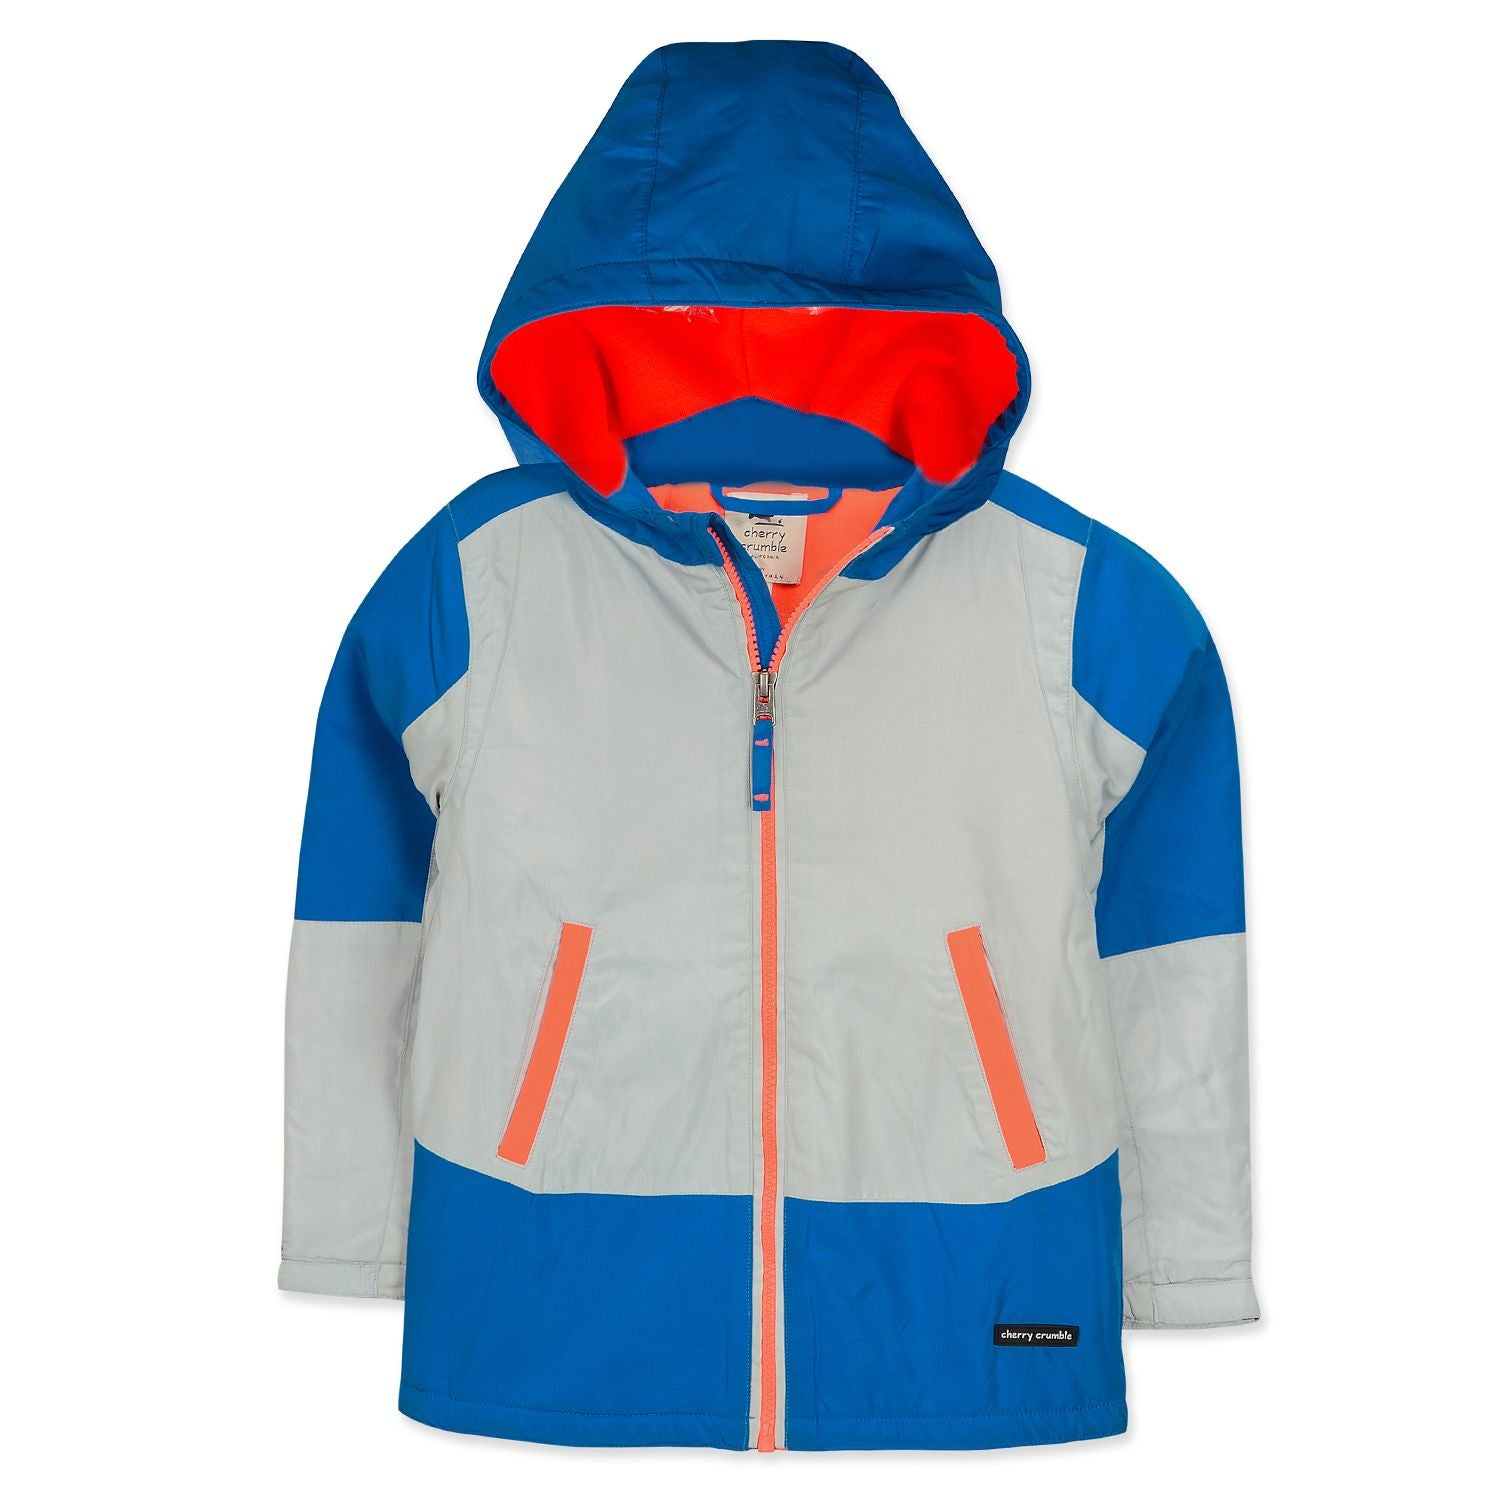 Colour Bomb Jacket for kids